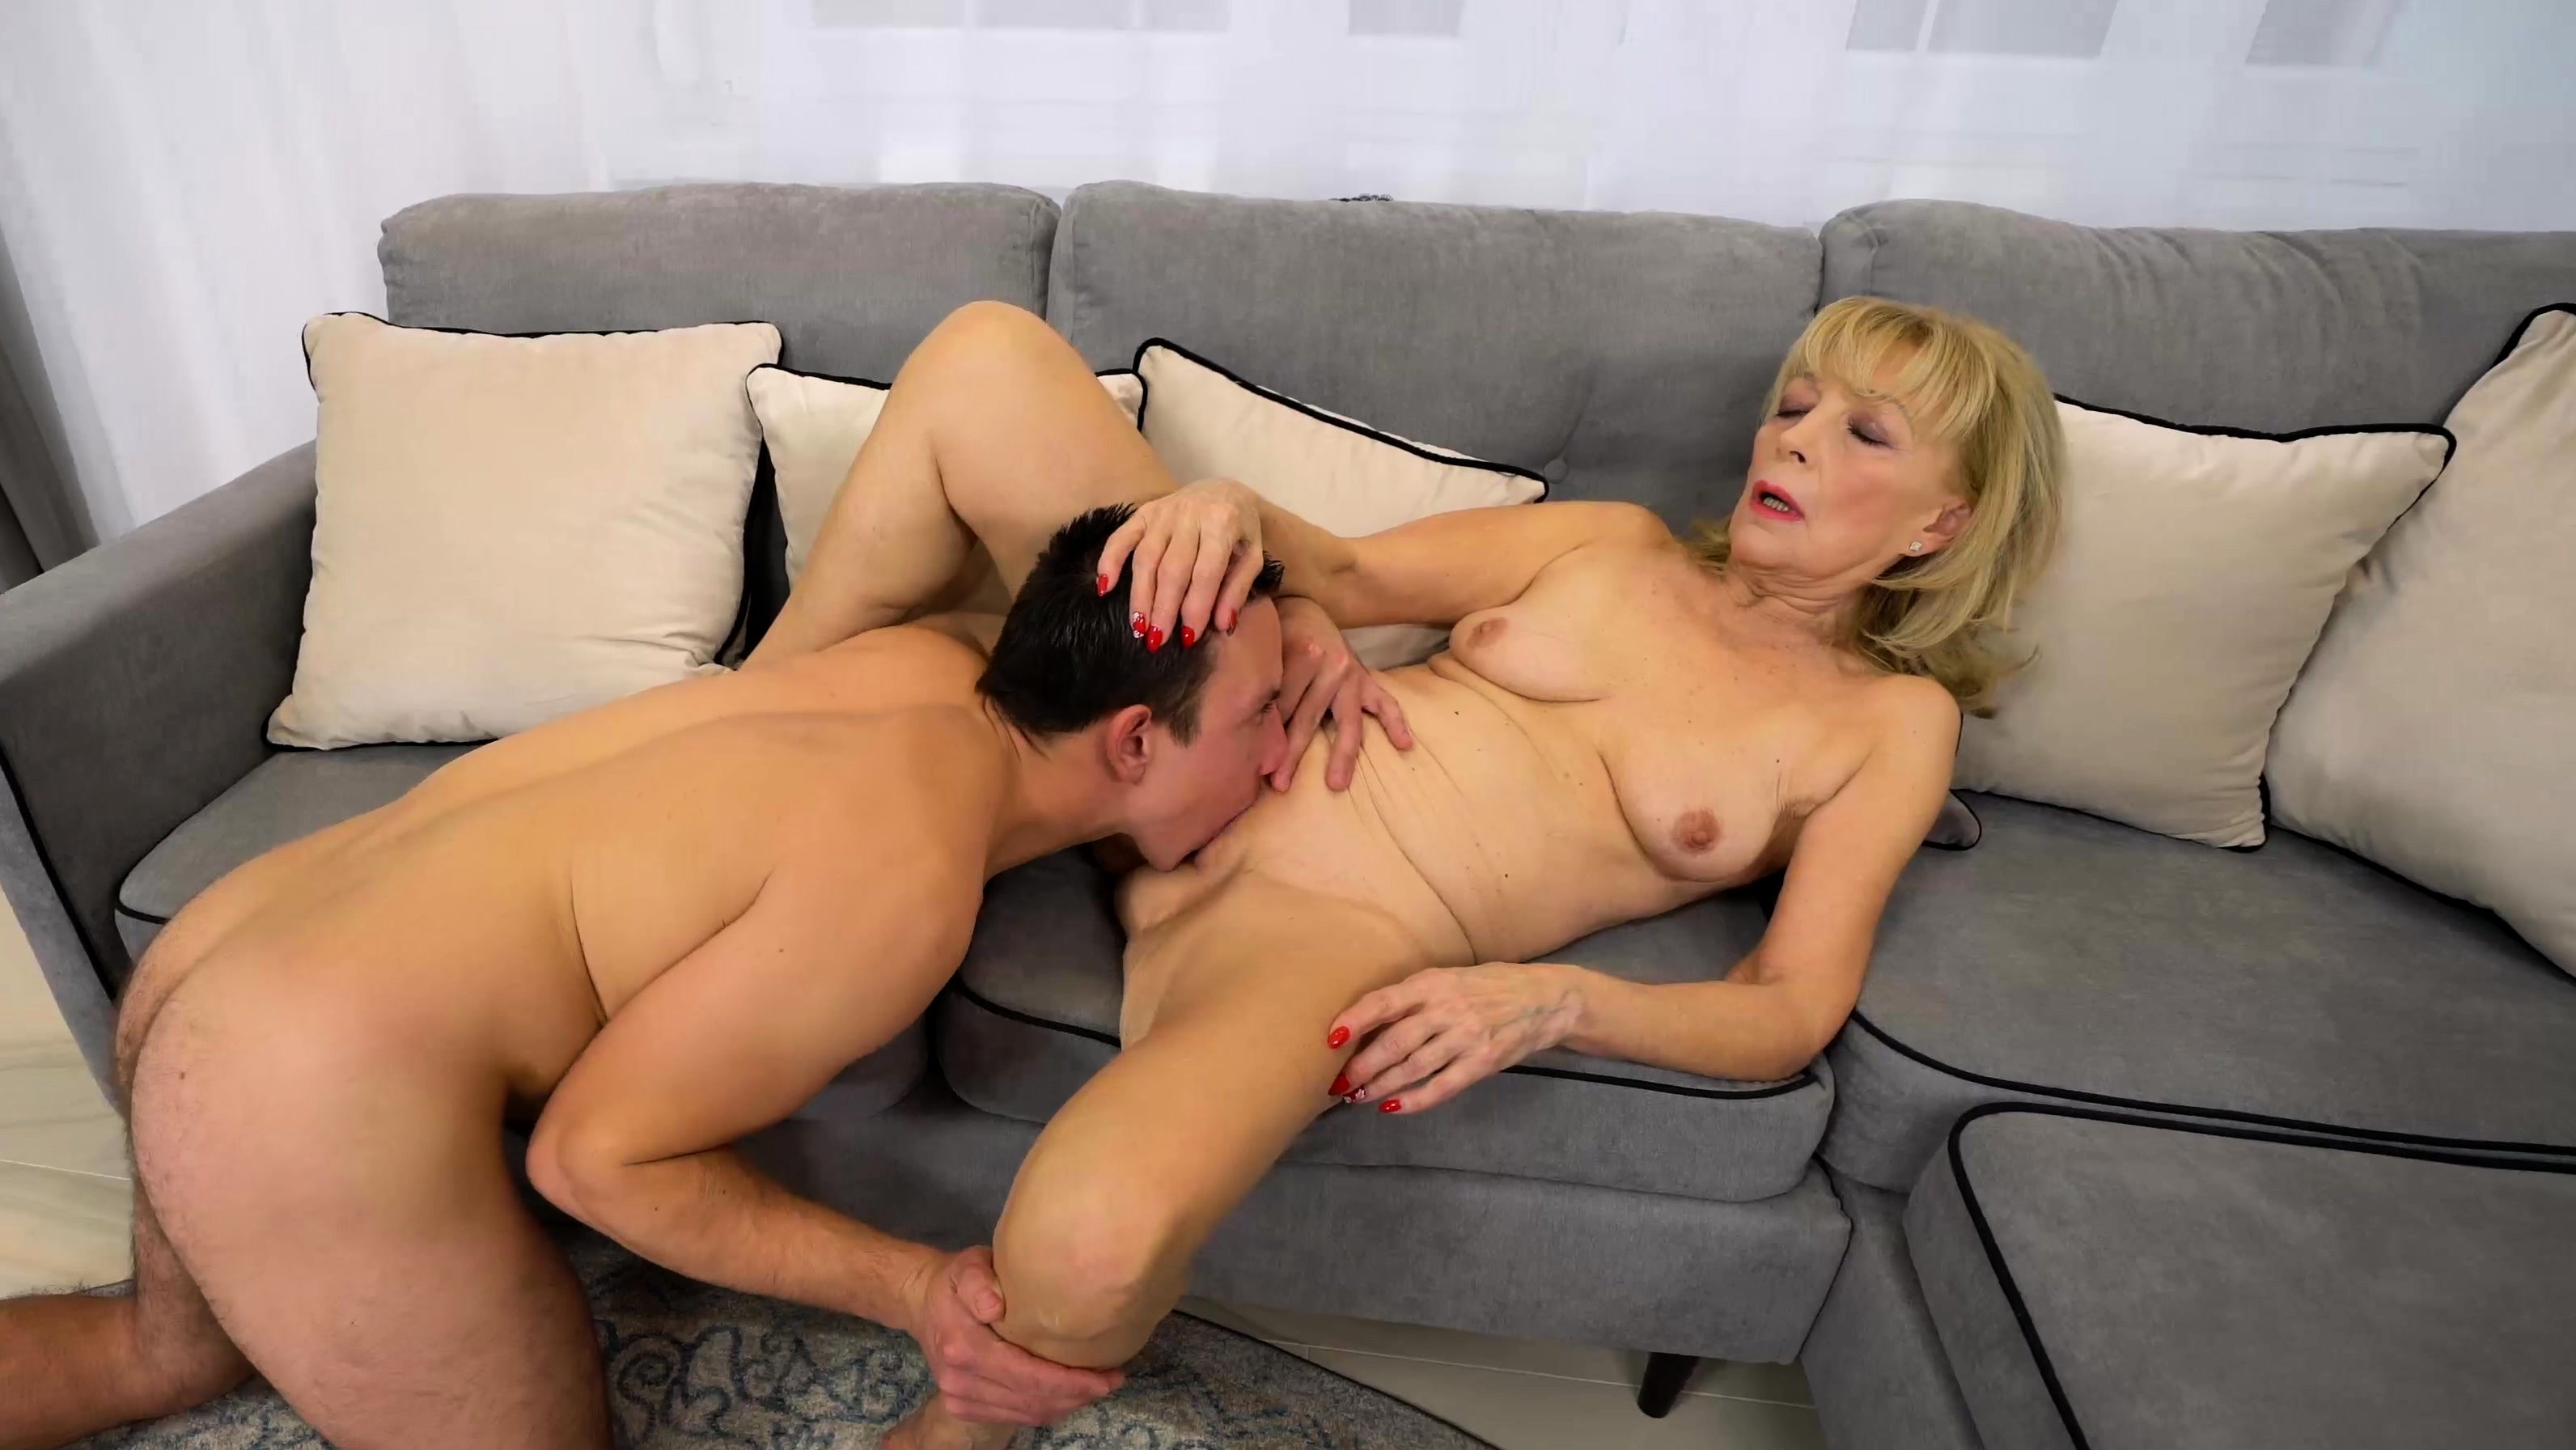 Mature Blonde Agelove Fucked Hard By Young